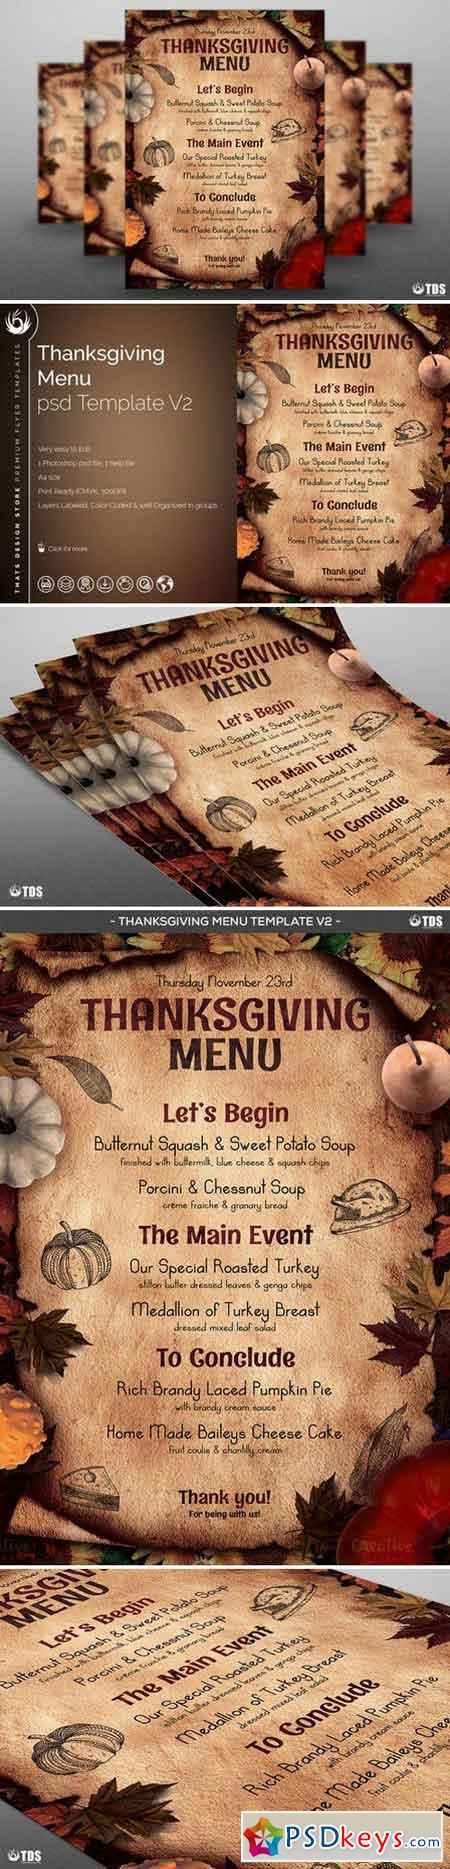 Thanksgiving Menu Template V2 887796